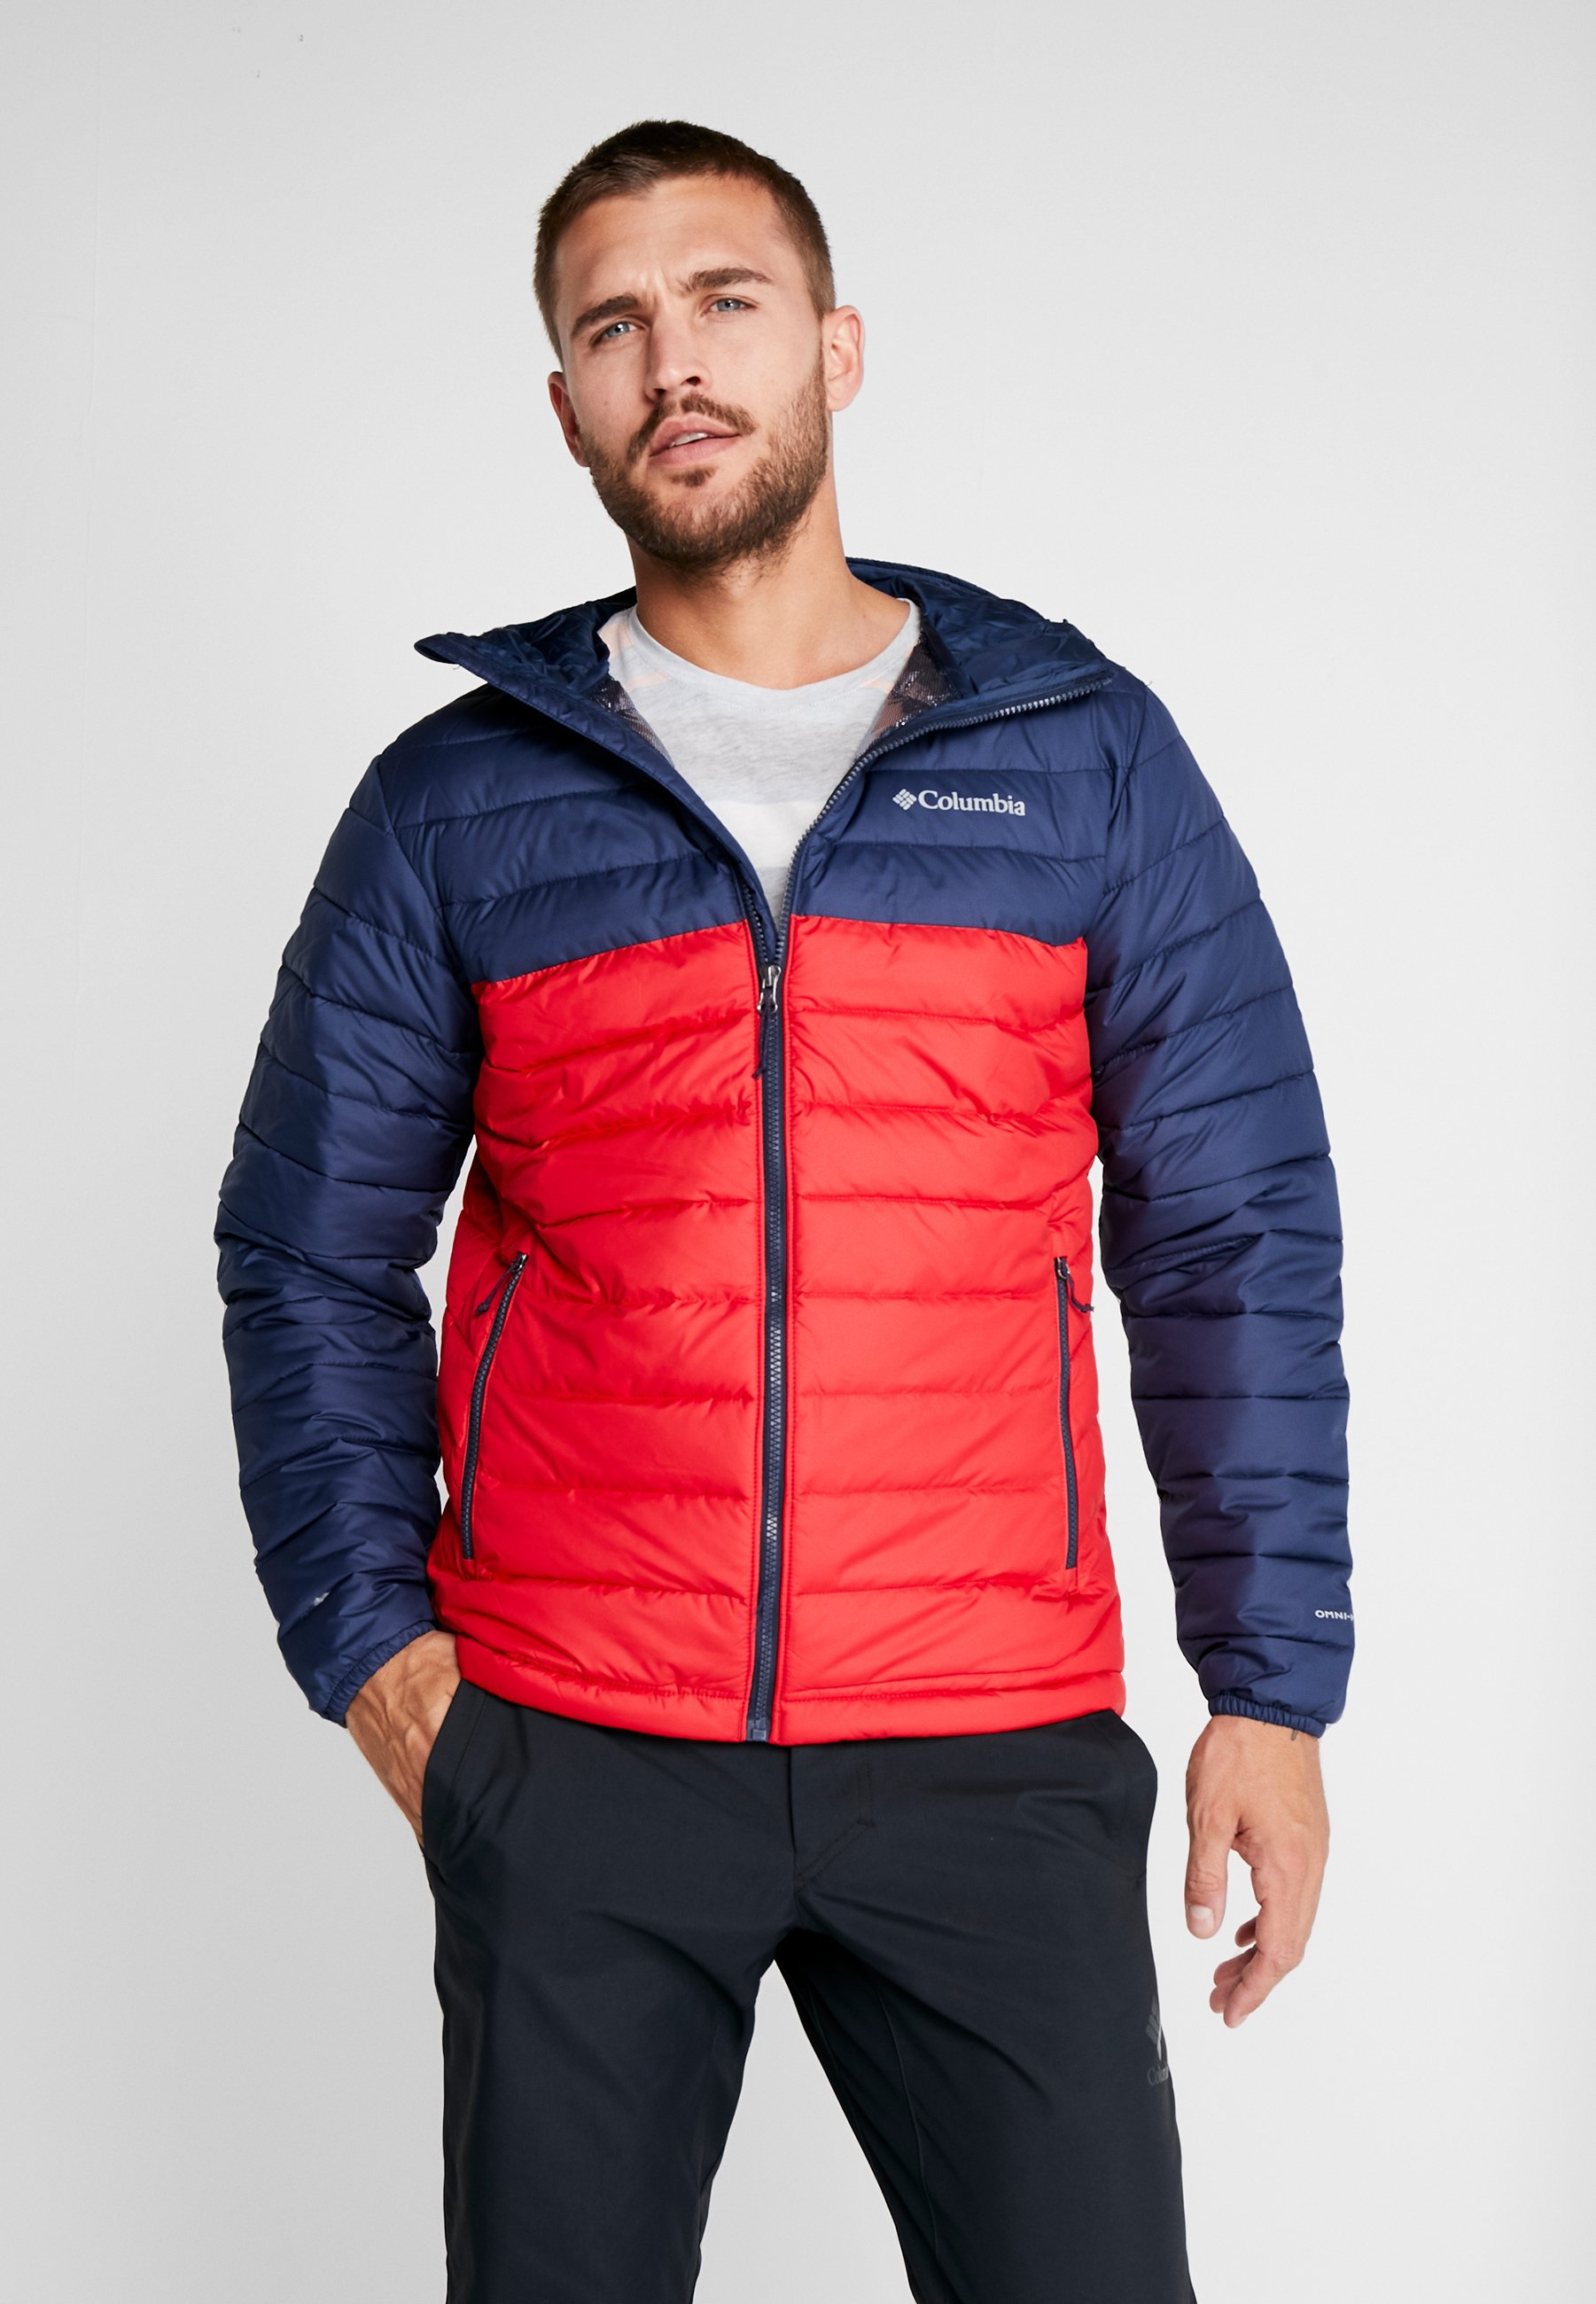 Powder Lite Mountain Navy Columbia JacketVeste collegiate Hooded Red D'hiver SUqzMpV